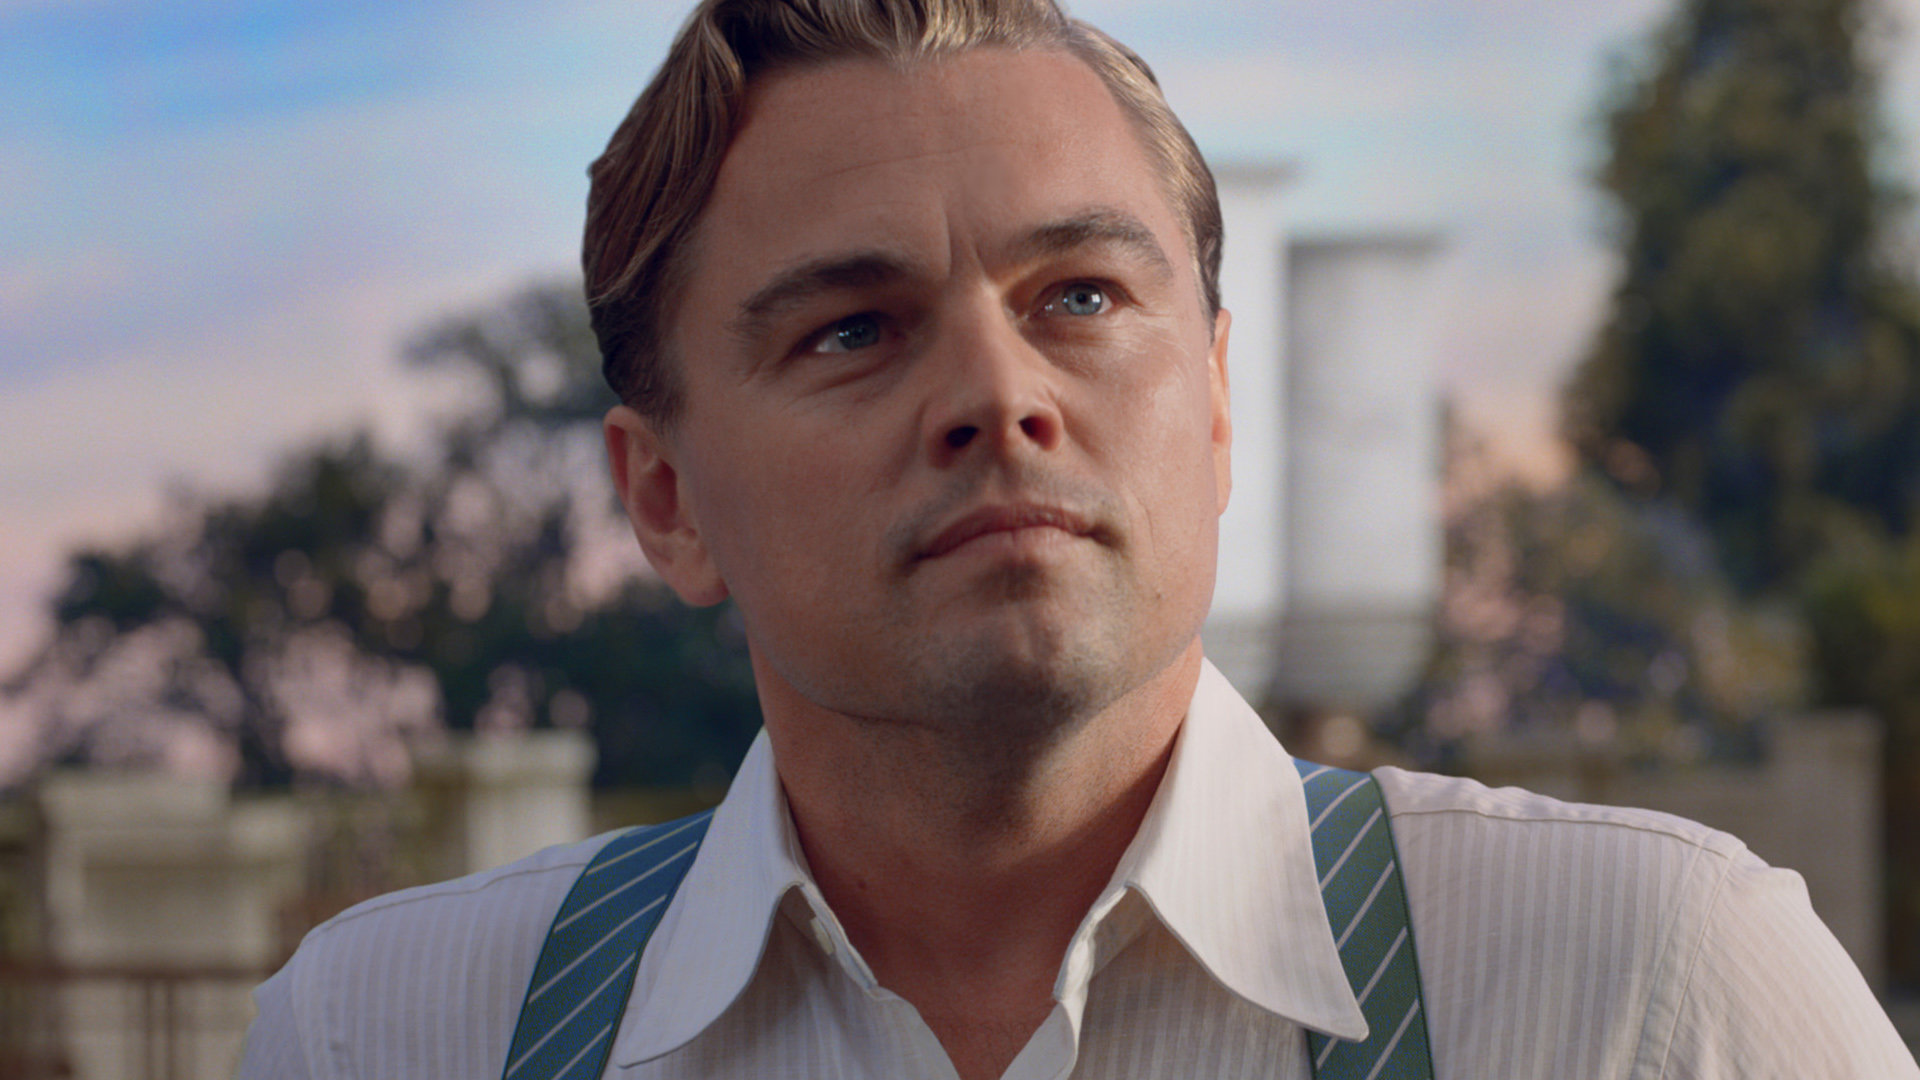 Download full hd 1920x1080 Leonardo Dicaprio computer wallpaper ID:324405 for free